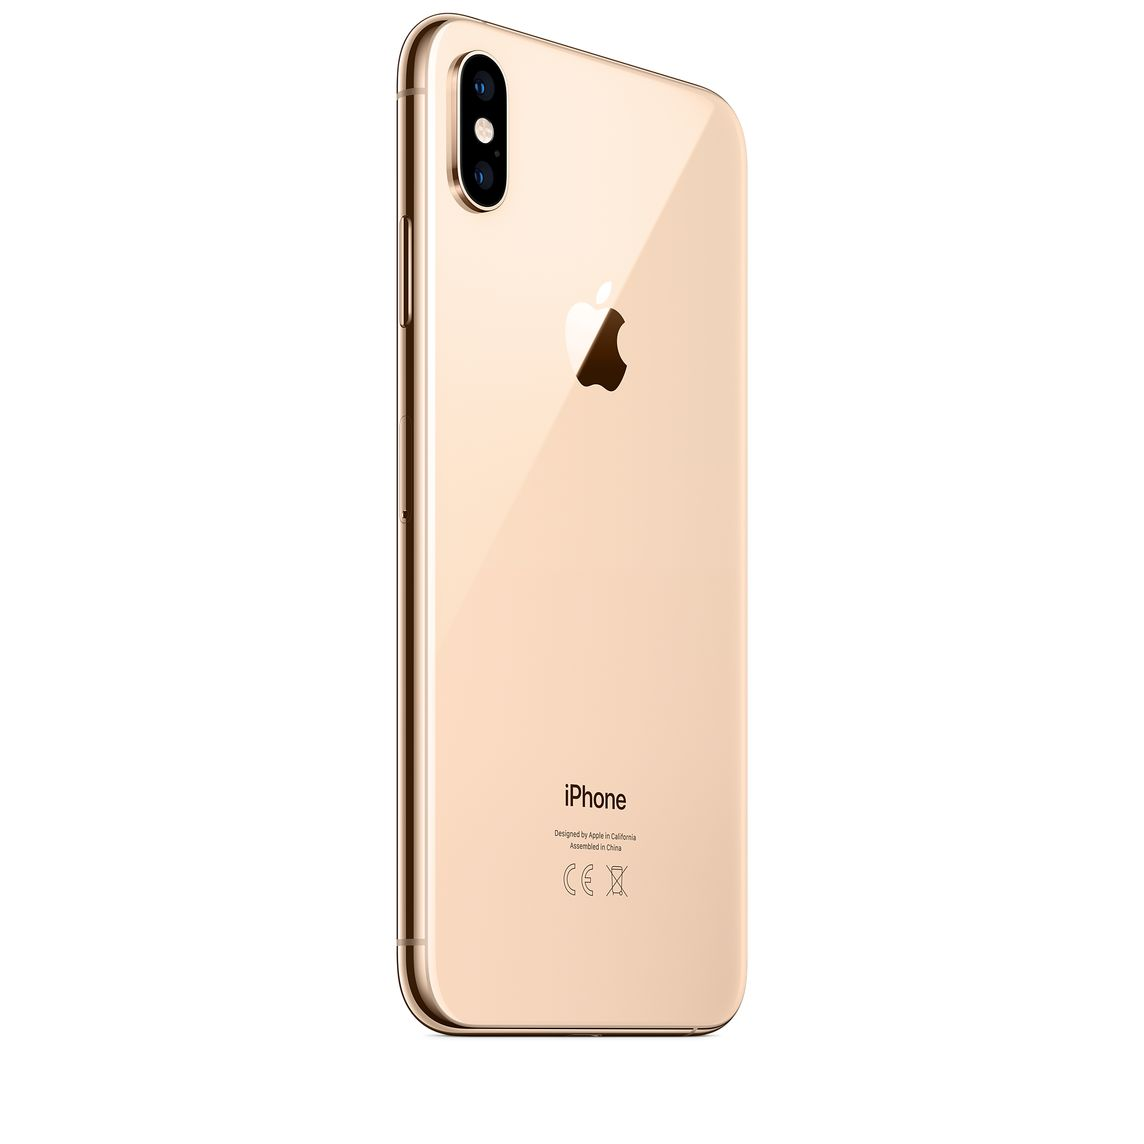 Refurbished iPhone XS Max 512GB - Gold (Unlocked) - Apple